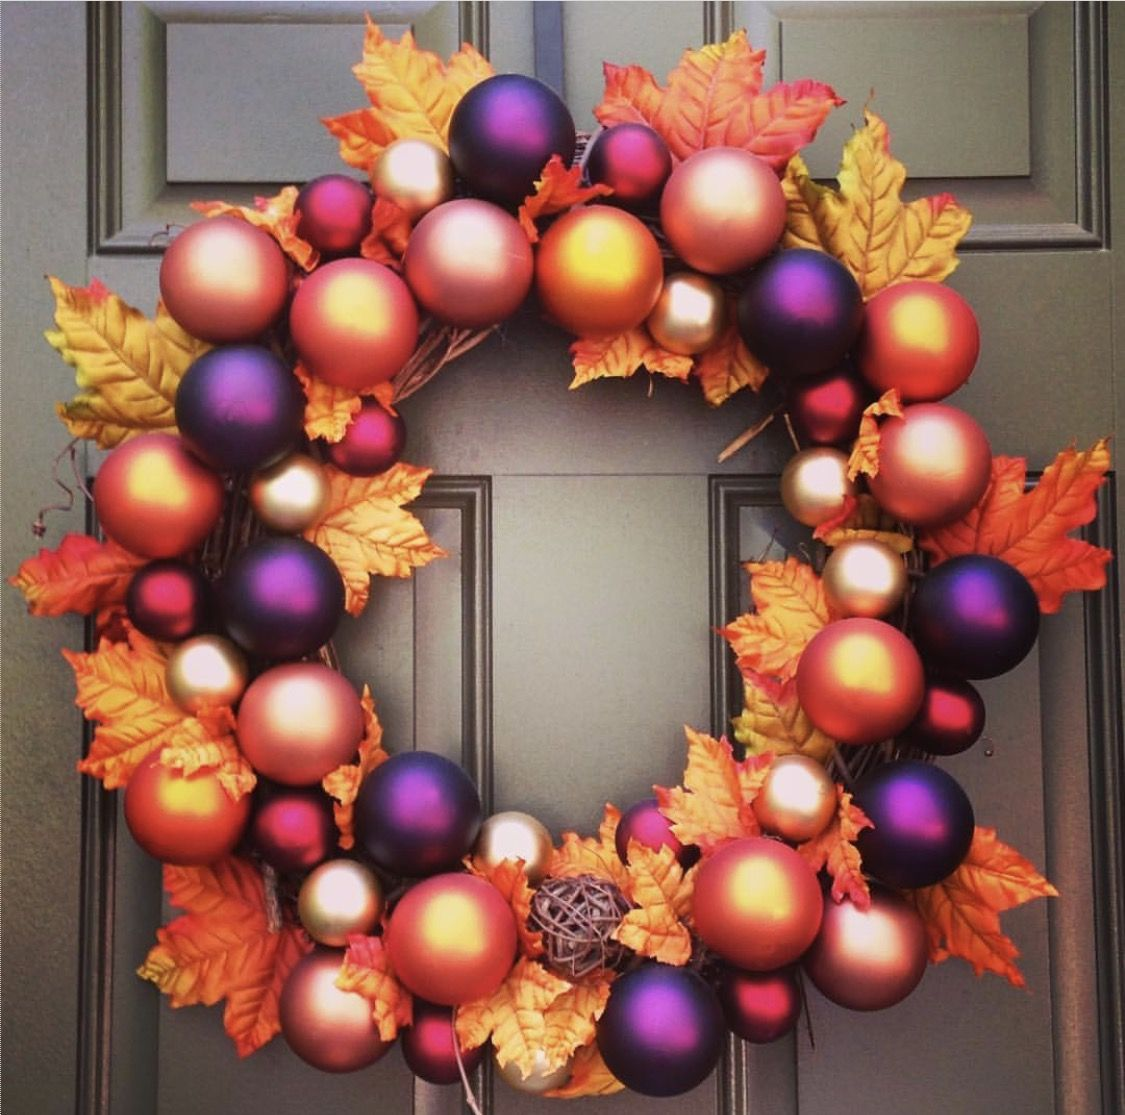 Autumn wreath made with glass balls and leaves on a grapevine wreath.